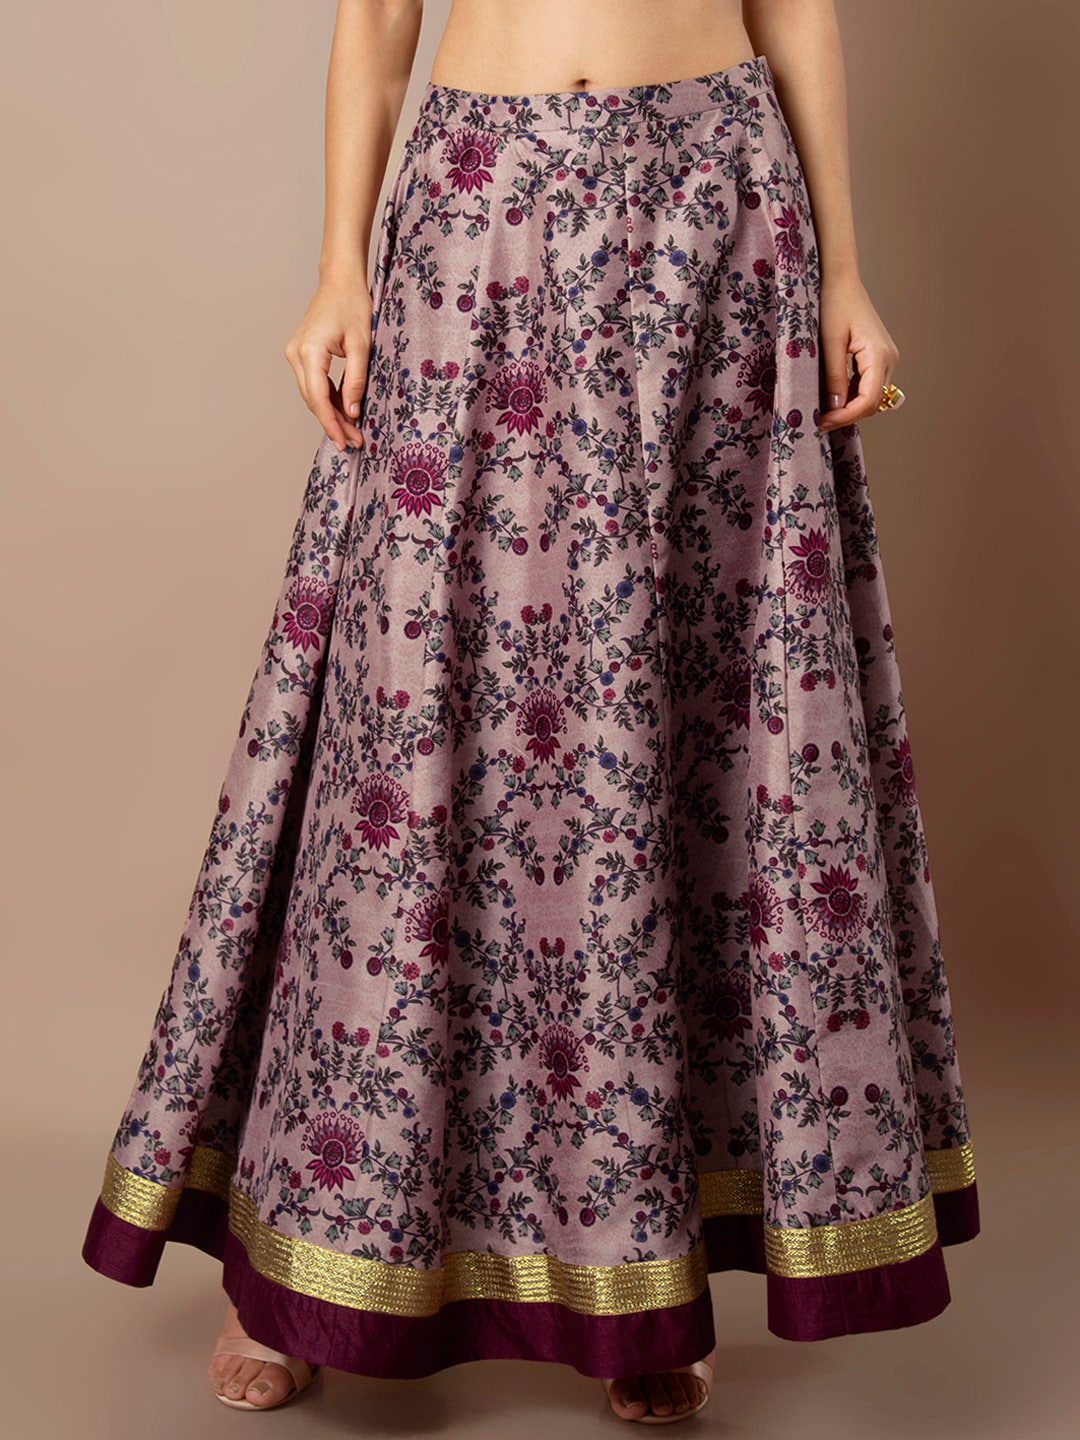 7fdeca8c40 Silk Skirts Tunics - Buy Silk Skirts Tunics online in India